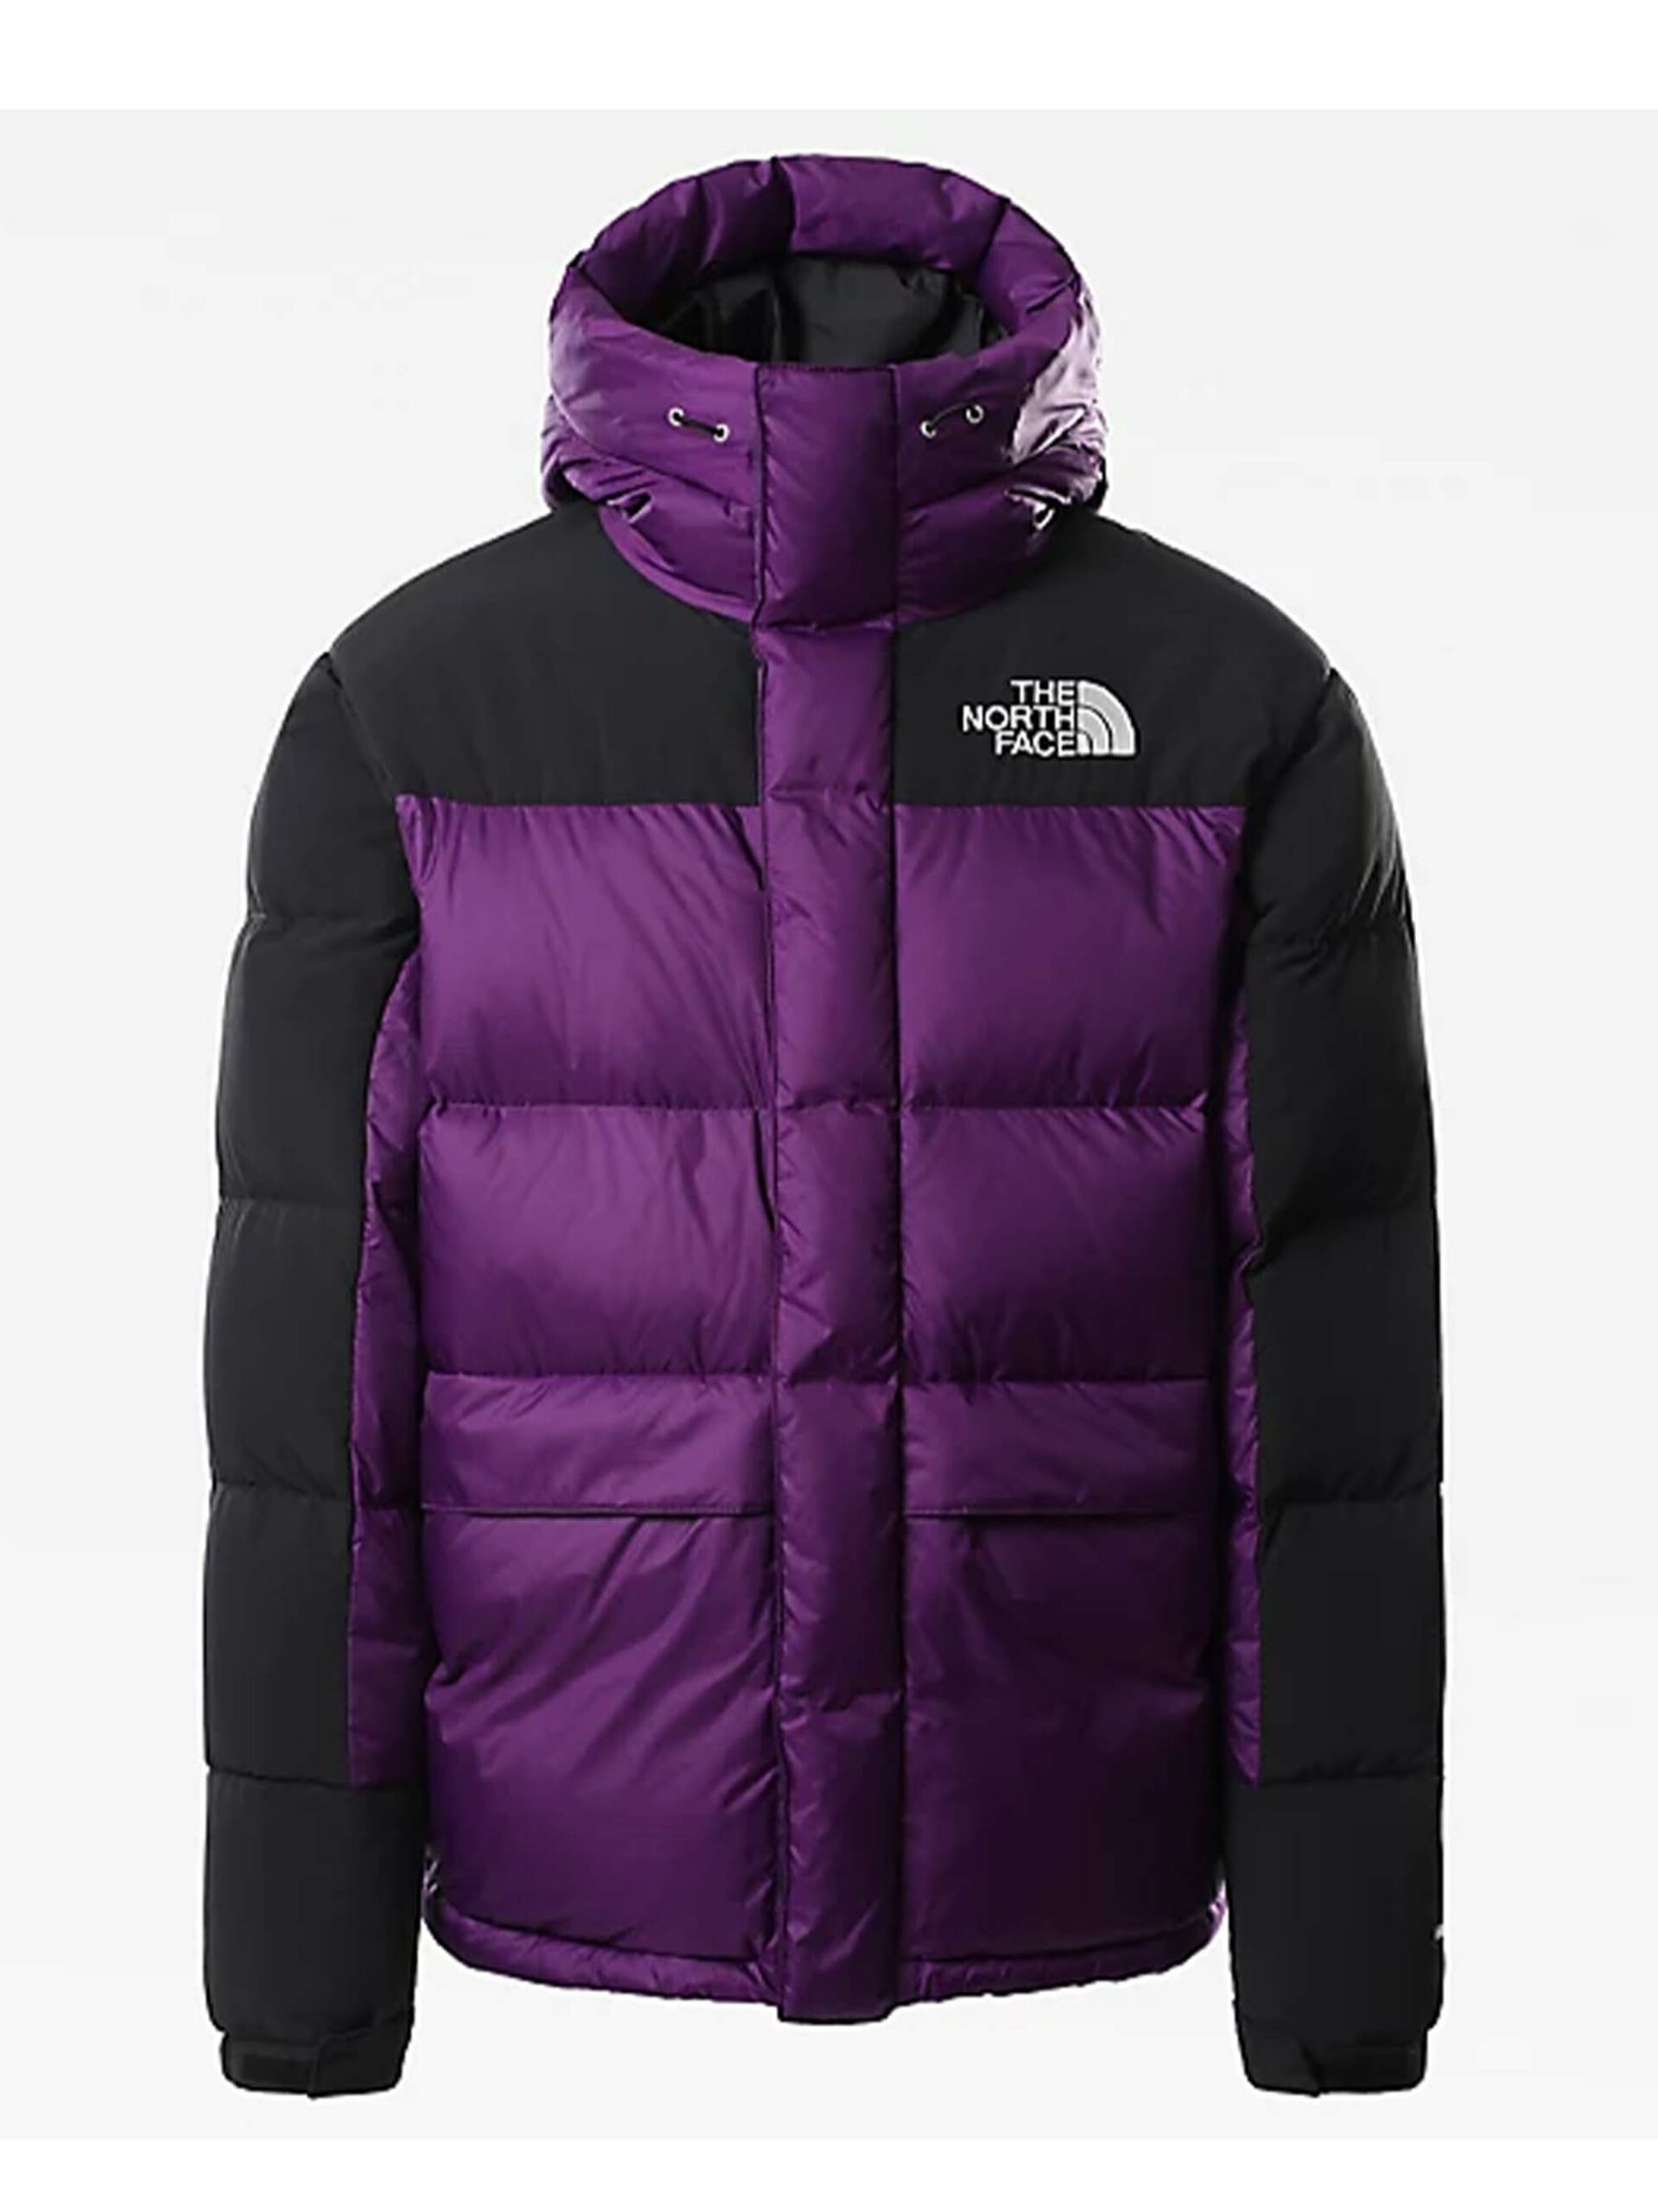 <p class='small-title'>THE NORTH FACE</p>HIMALAYAN purple and black